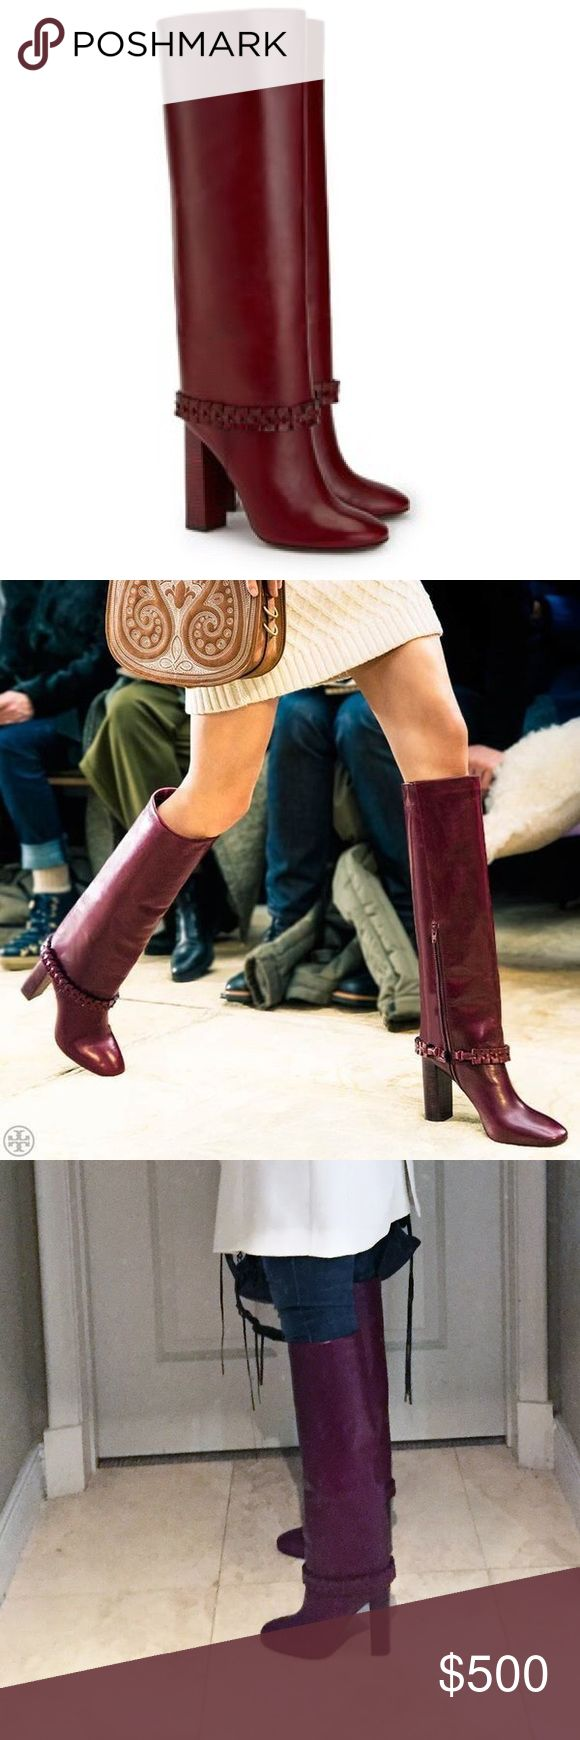 🔥Cranberry red knee high boots 🔥 Tory Burch - 2016 fall runway: a Seventies-inspired stovepipe style that looks great with jeans and shorter shirtdresses. made of smooth leather that will develop a rich, well-worn appearance over time. Complete with a braided strap around the ankle and a high stacked-wood heel, it can bring a Hot element to any look. Tory Burch Shoes Over the Knee Boots